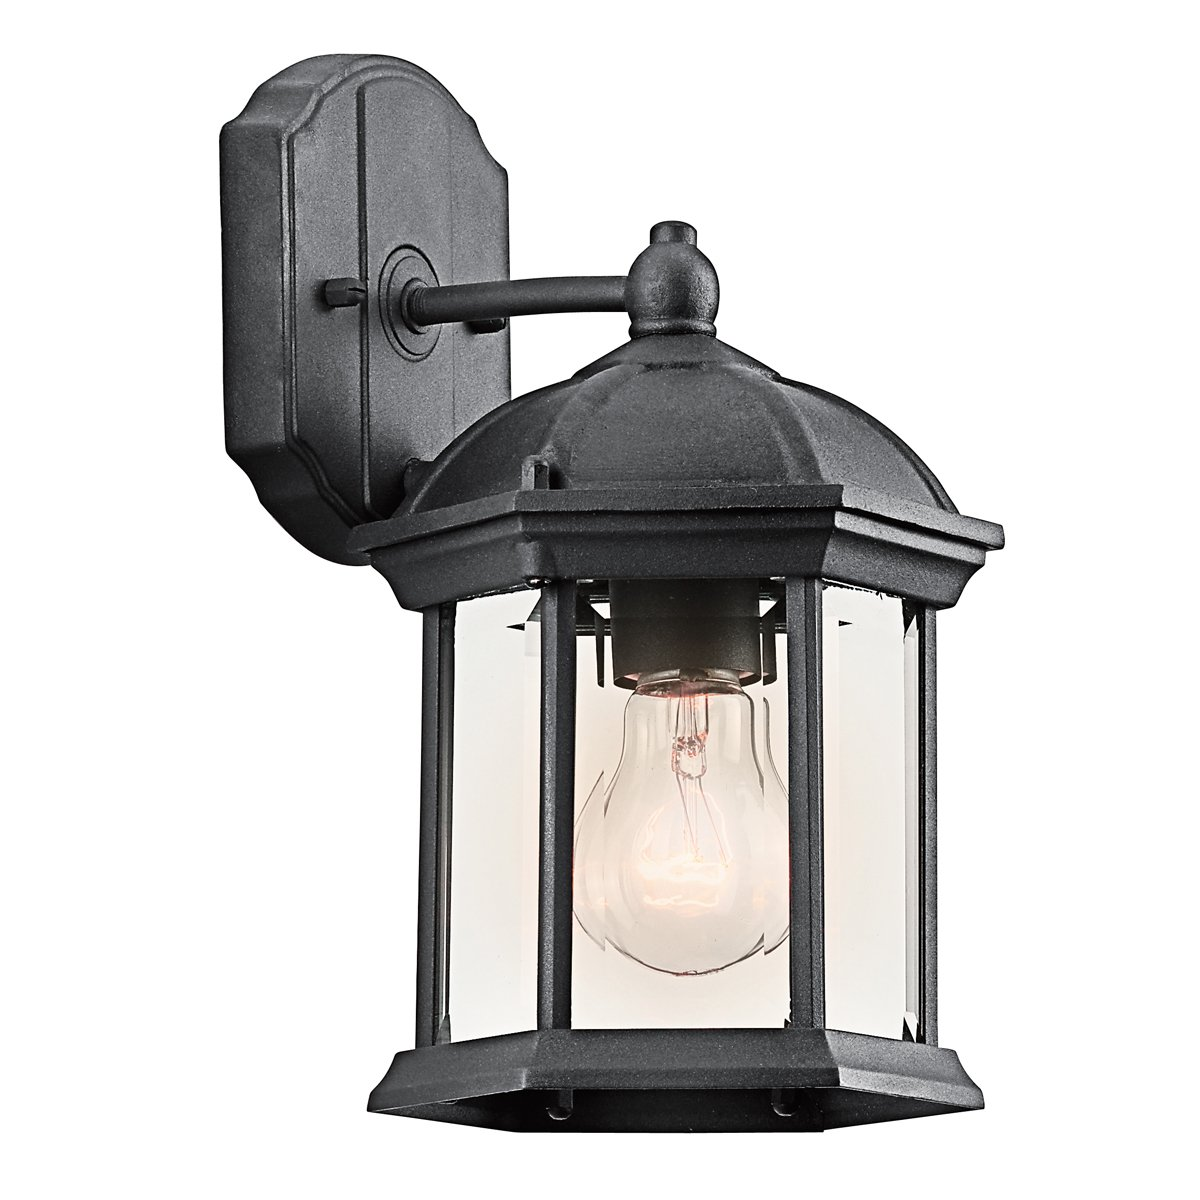 Wall Mount Outdoor Lighting Kichler 9736tz one light outdoor wall mount wall porch lights kichler 9736tz one light outdoor wall mount wall porch lights amazon workwithnaturefo